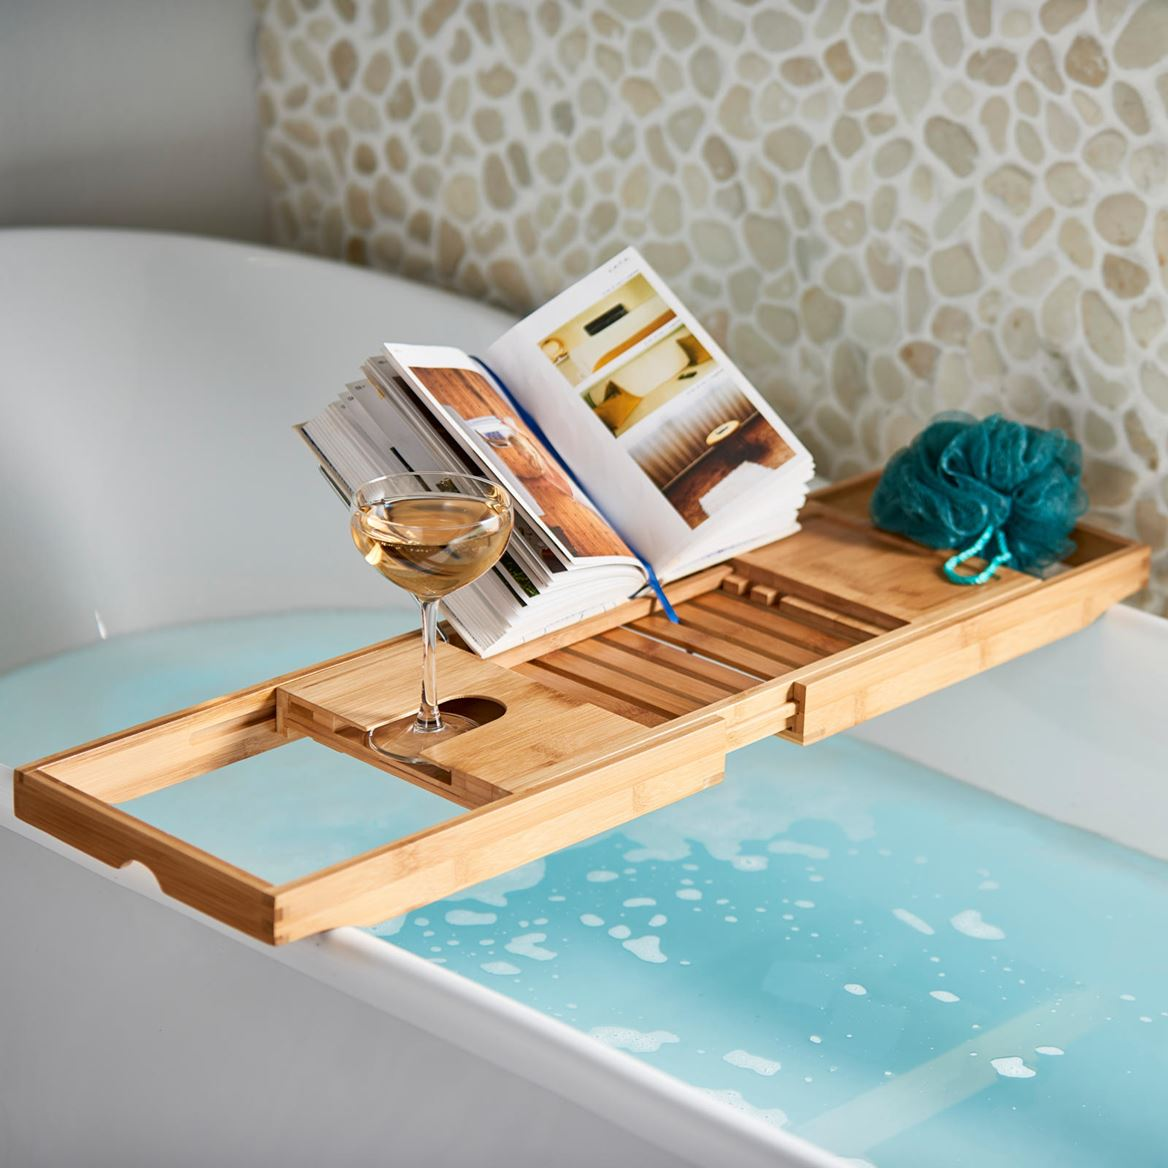 BAMBOO Table de bain naturel H 4 x Larg. 105 x P 22 cm_bamboo-table-de-bain-naturel-h-4-x-larg--105-x-p-22-cm